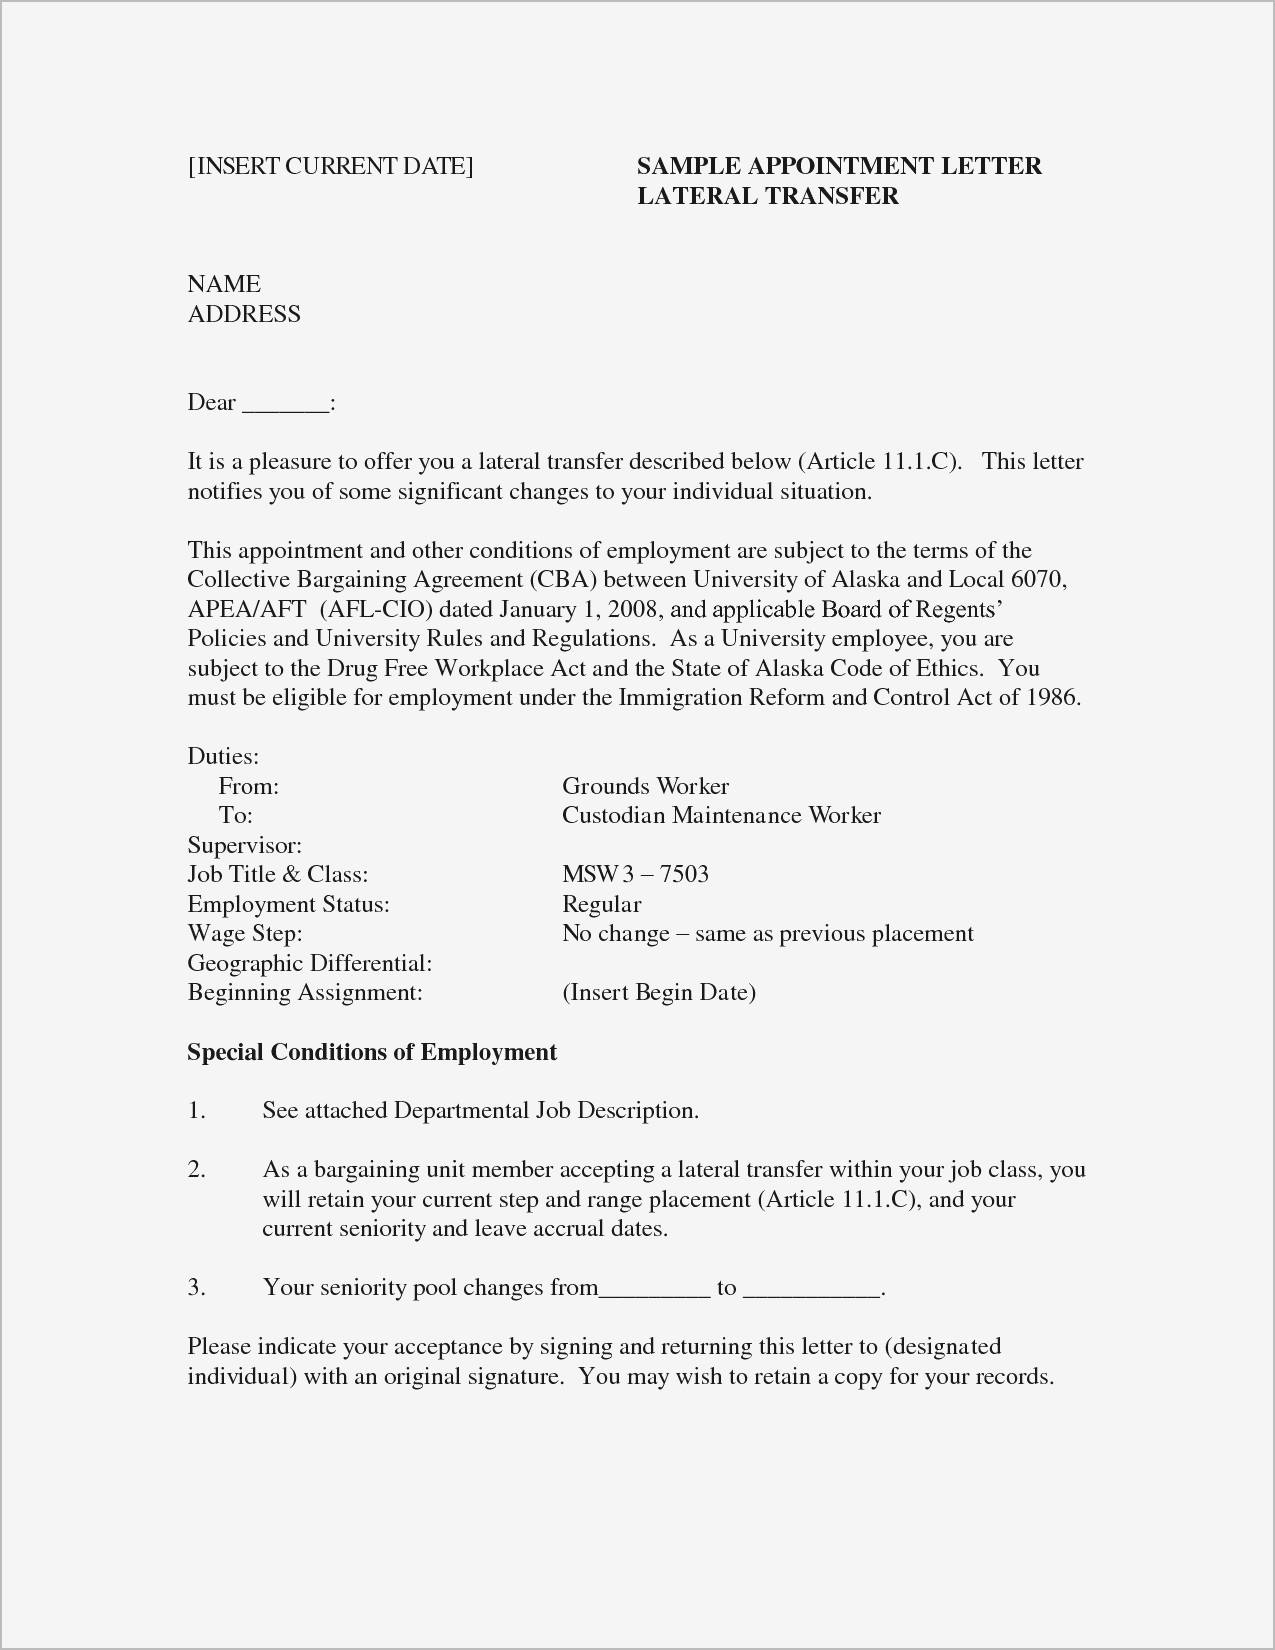 vacation request letters - Emayti australianuniversities co